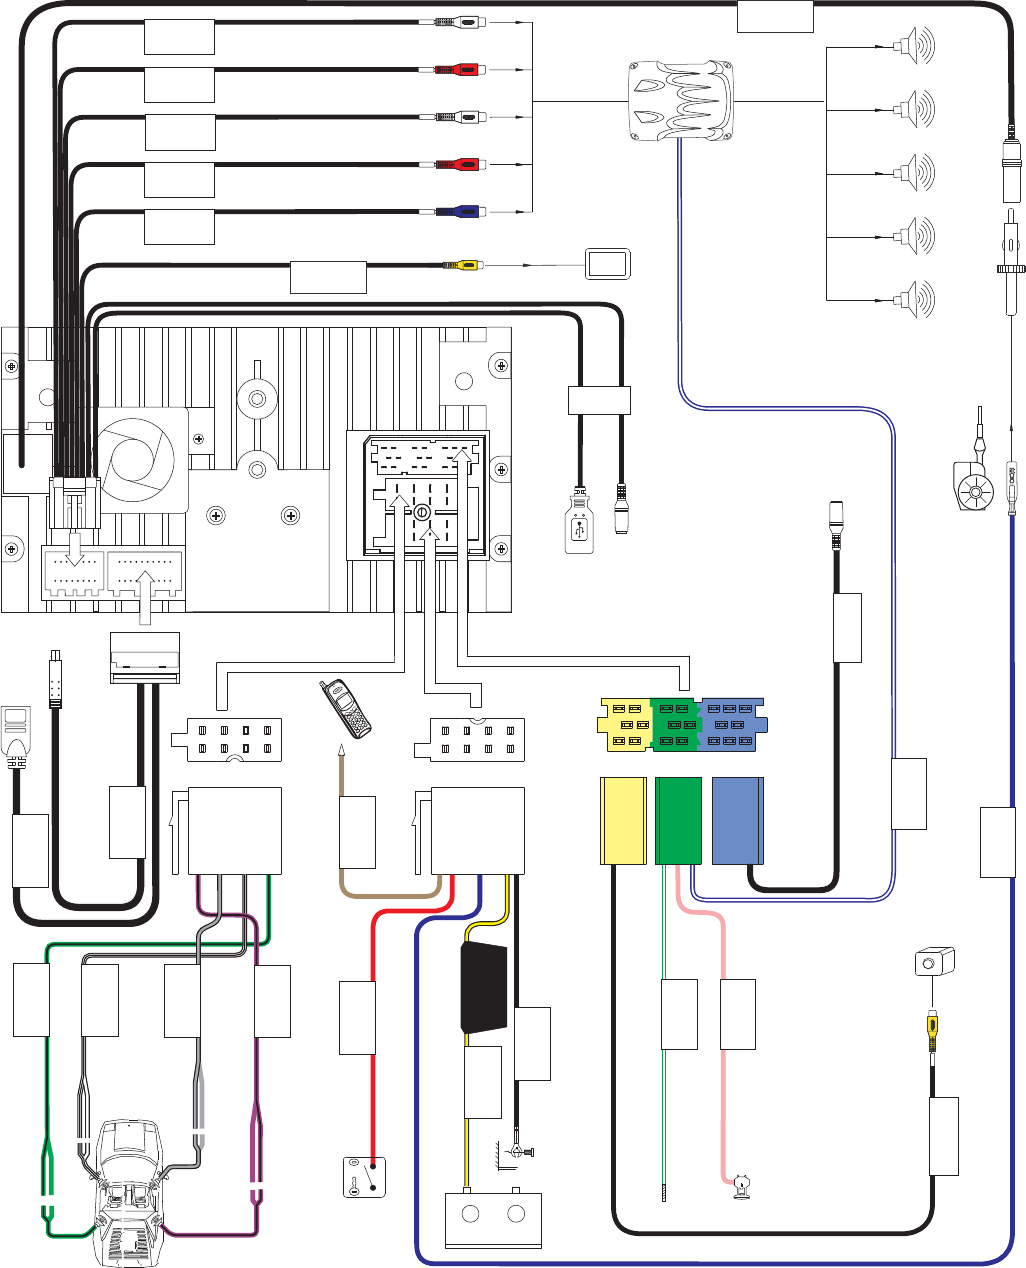 34fbcac4 7bef 4eb8 b34c 690a937048d0 bg4 jensen uv10 wiring diagram jensen wiring diagrams instruction jensen wiring harness at crackthecode.co